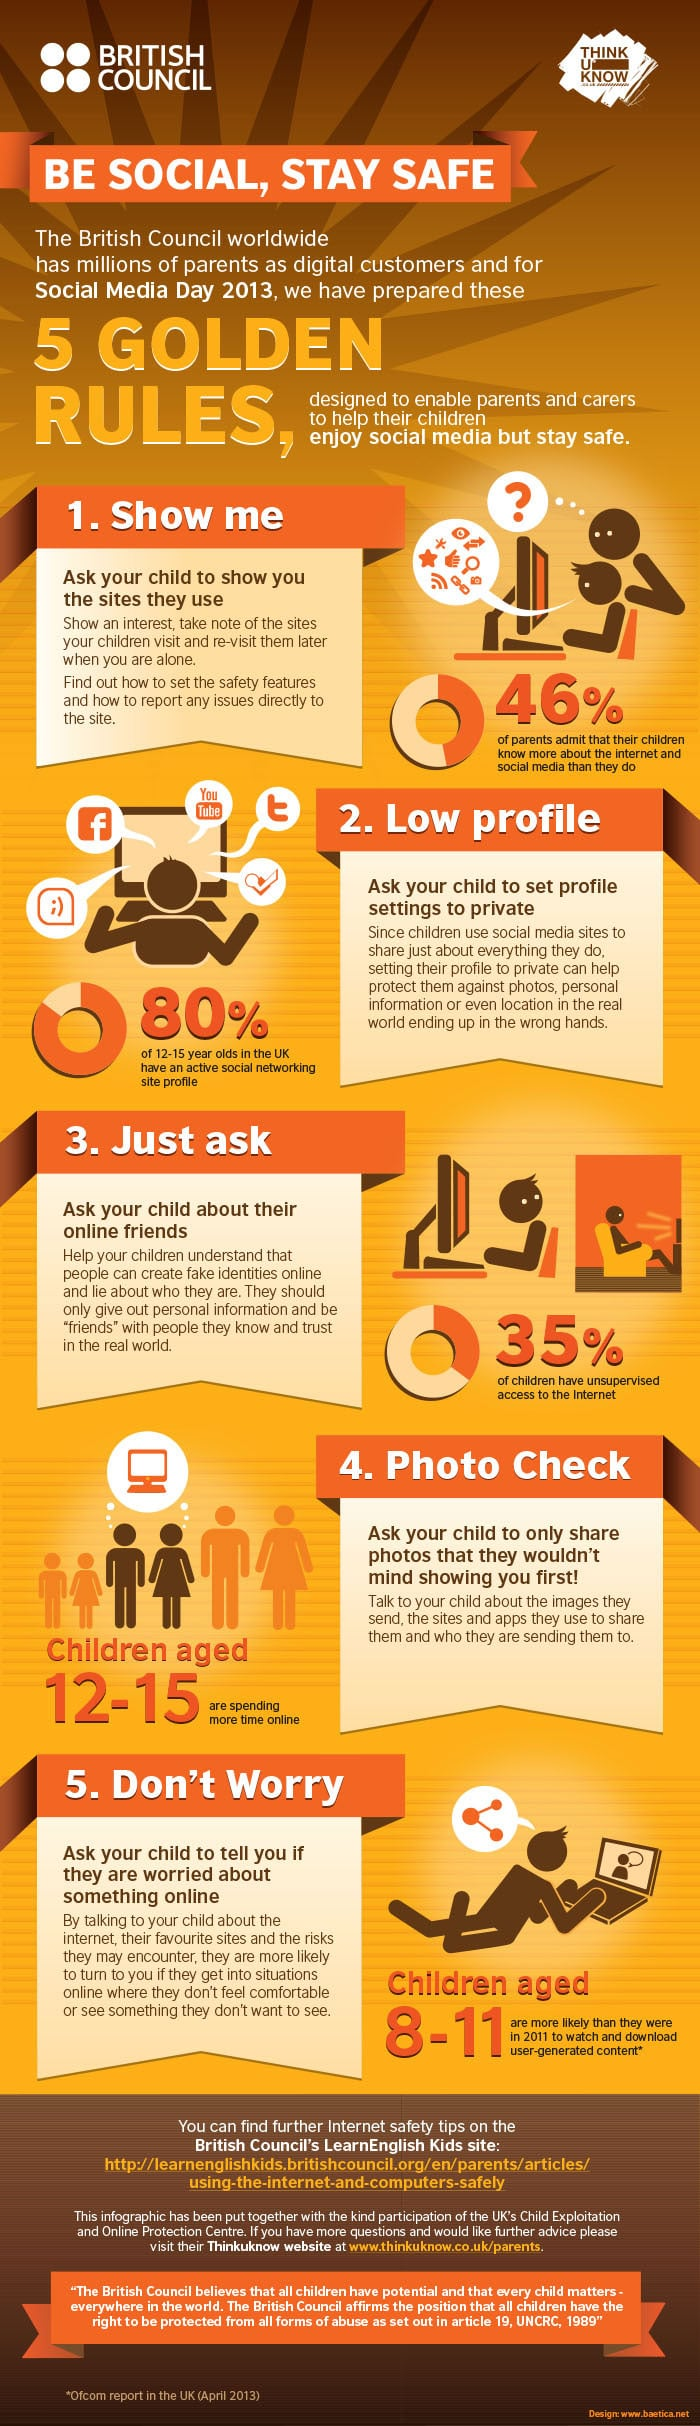 keep-children-safe-social-media